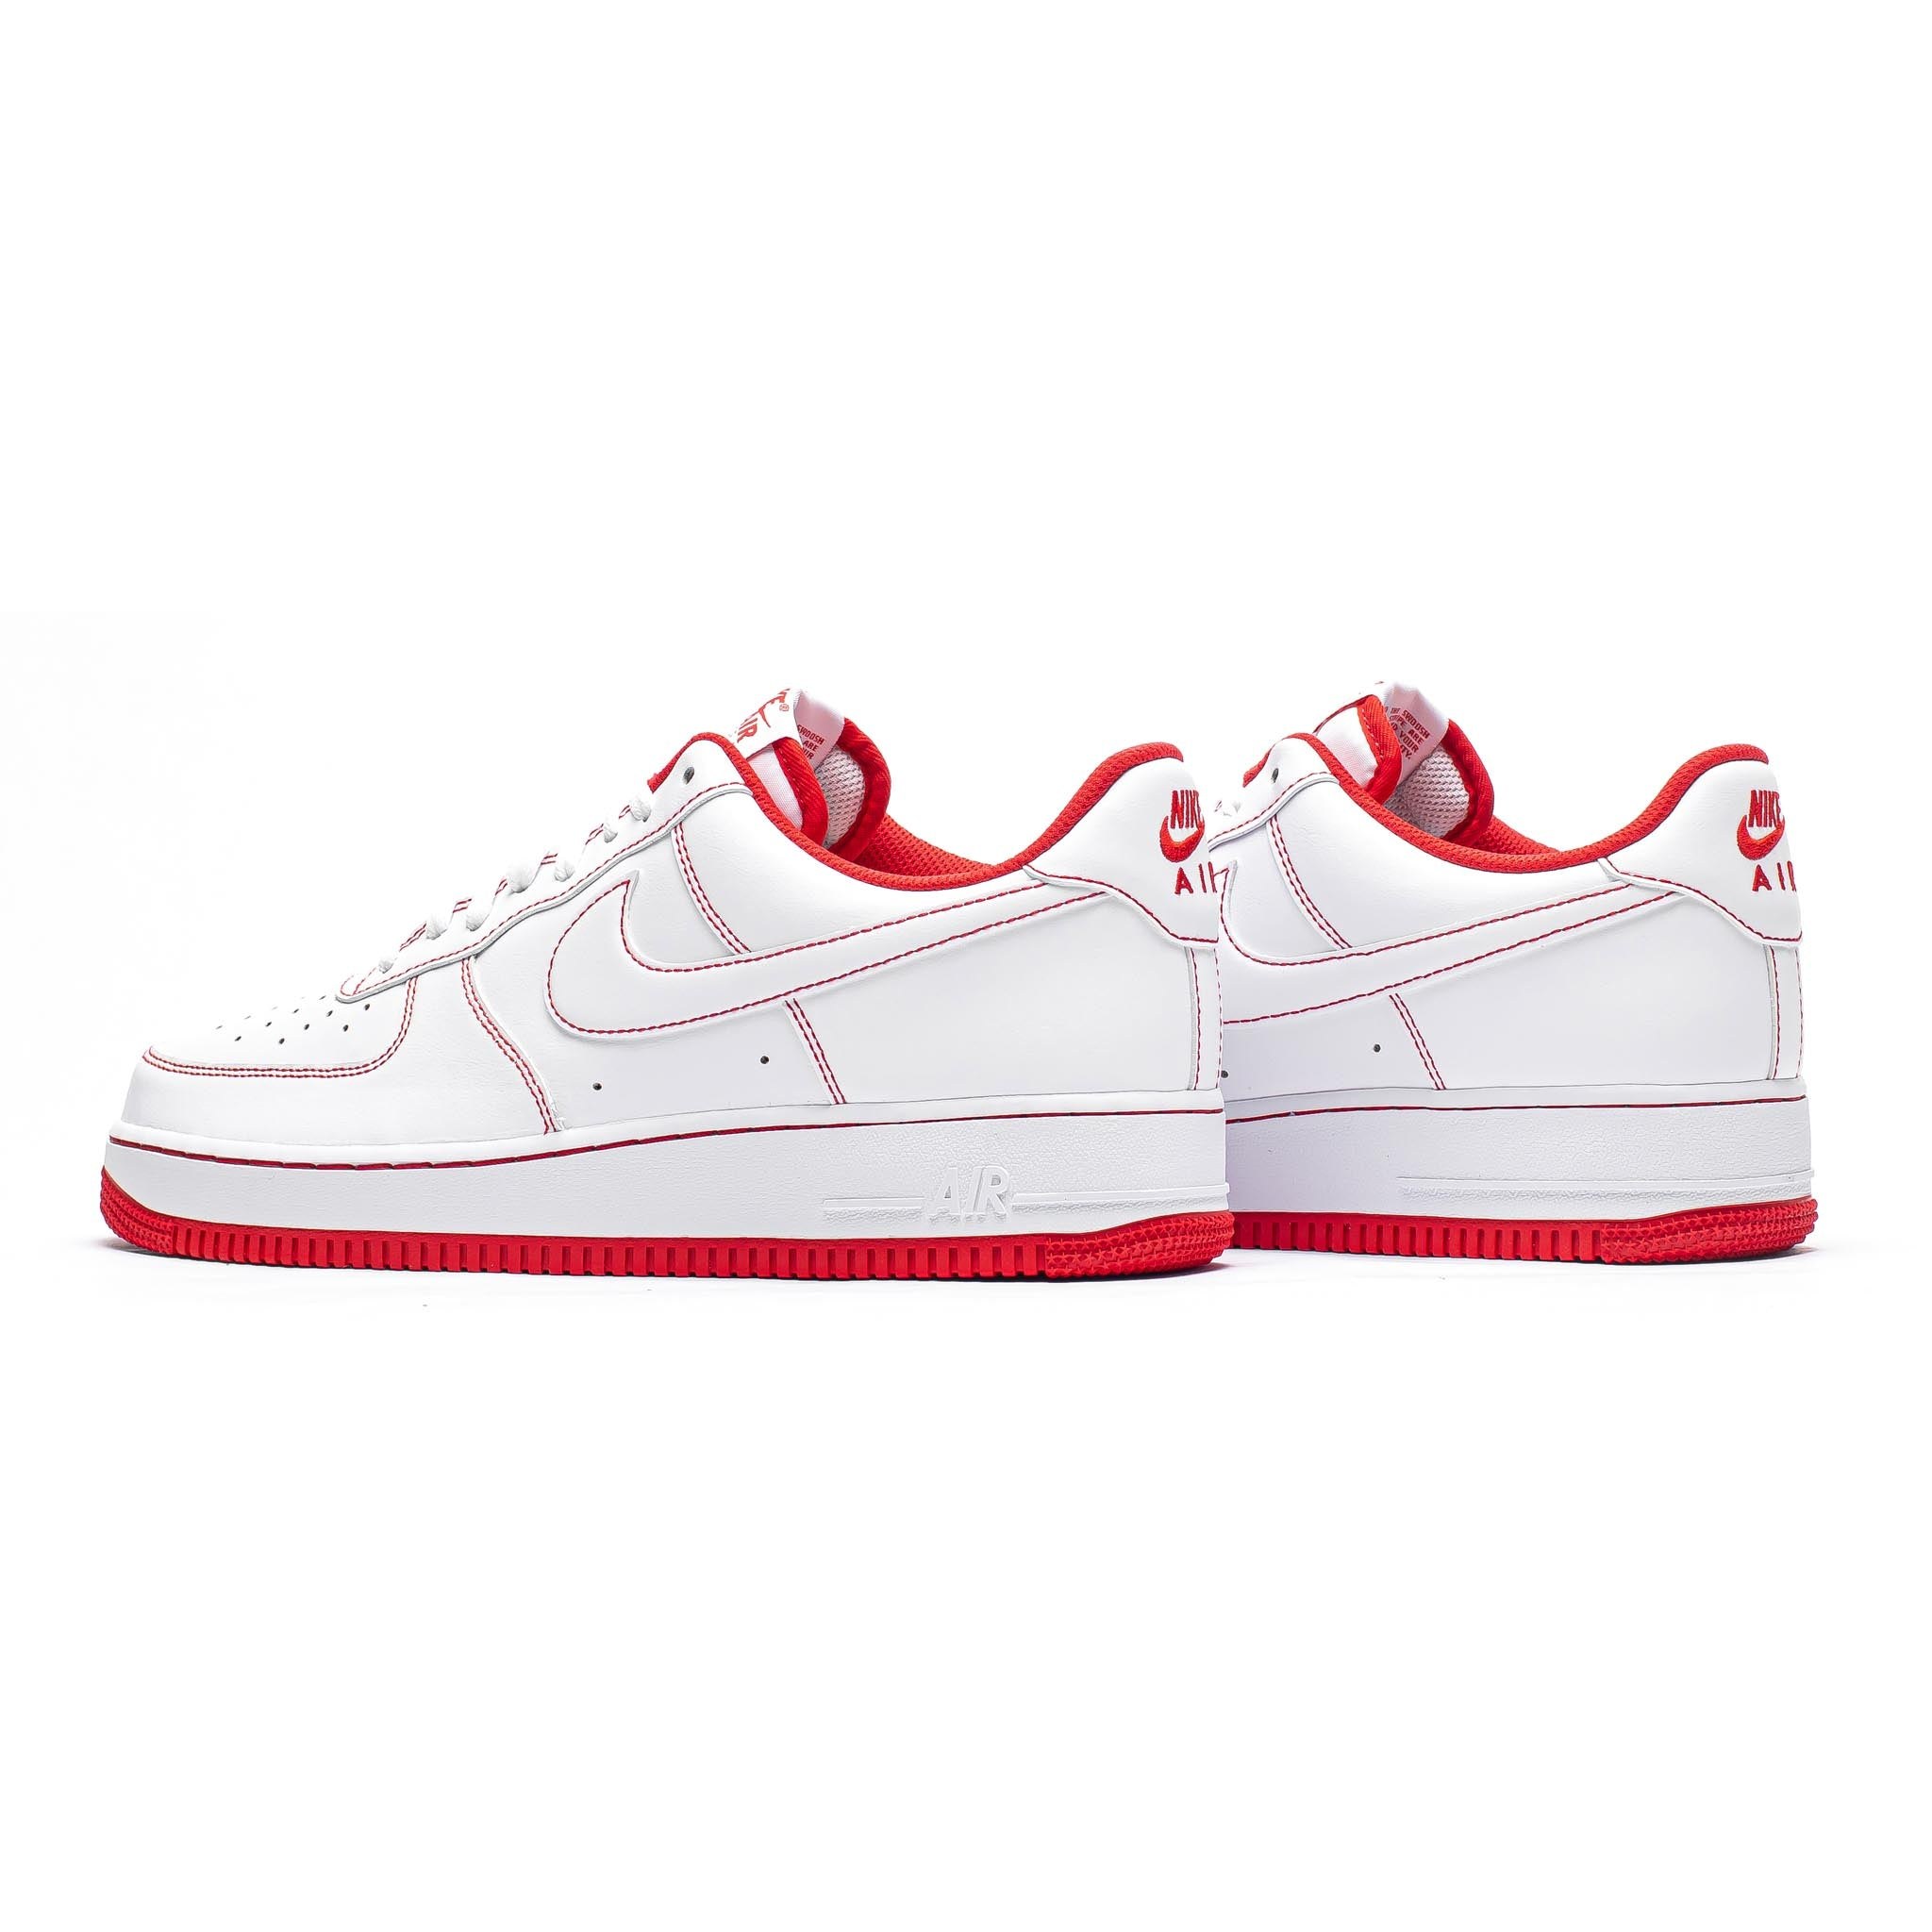 Nike Air Force 1 '07 'Contrast Stitch' White/University Red